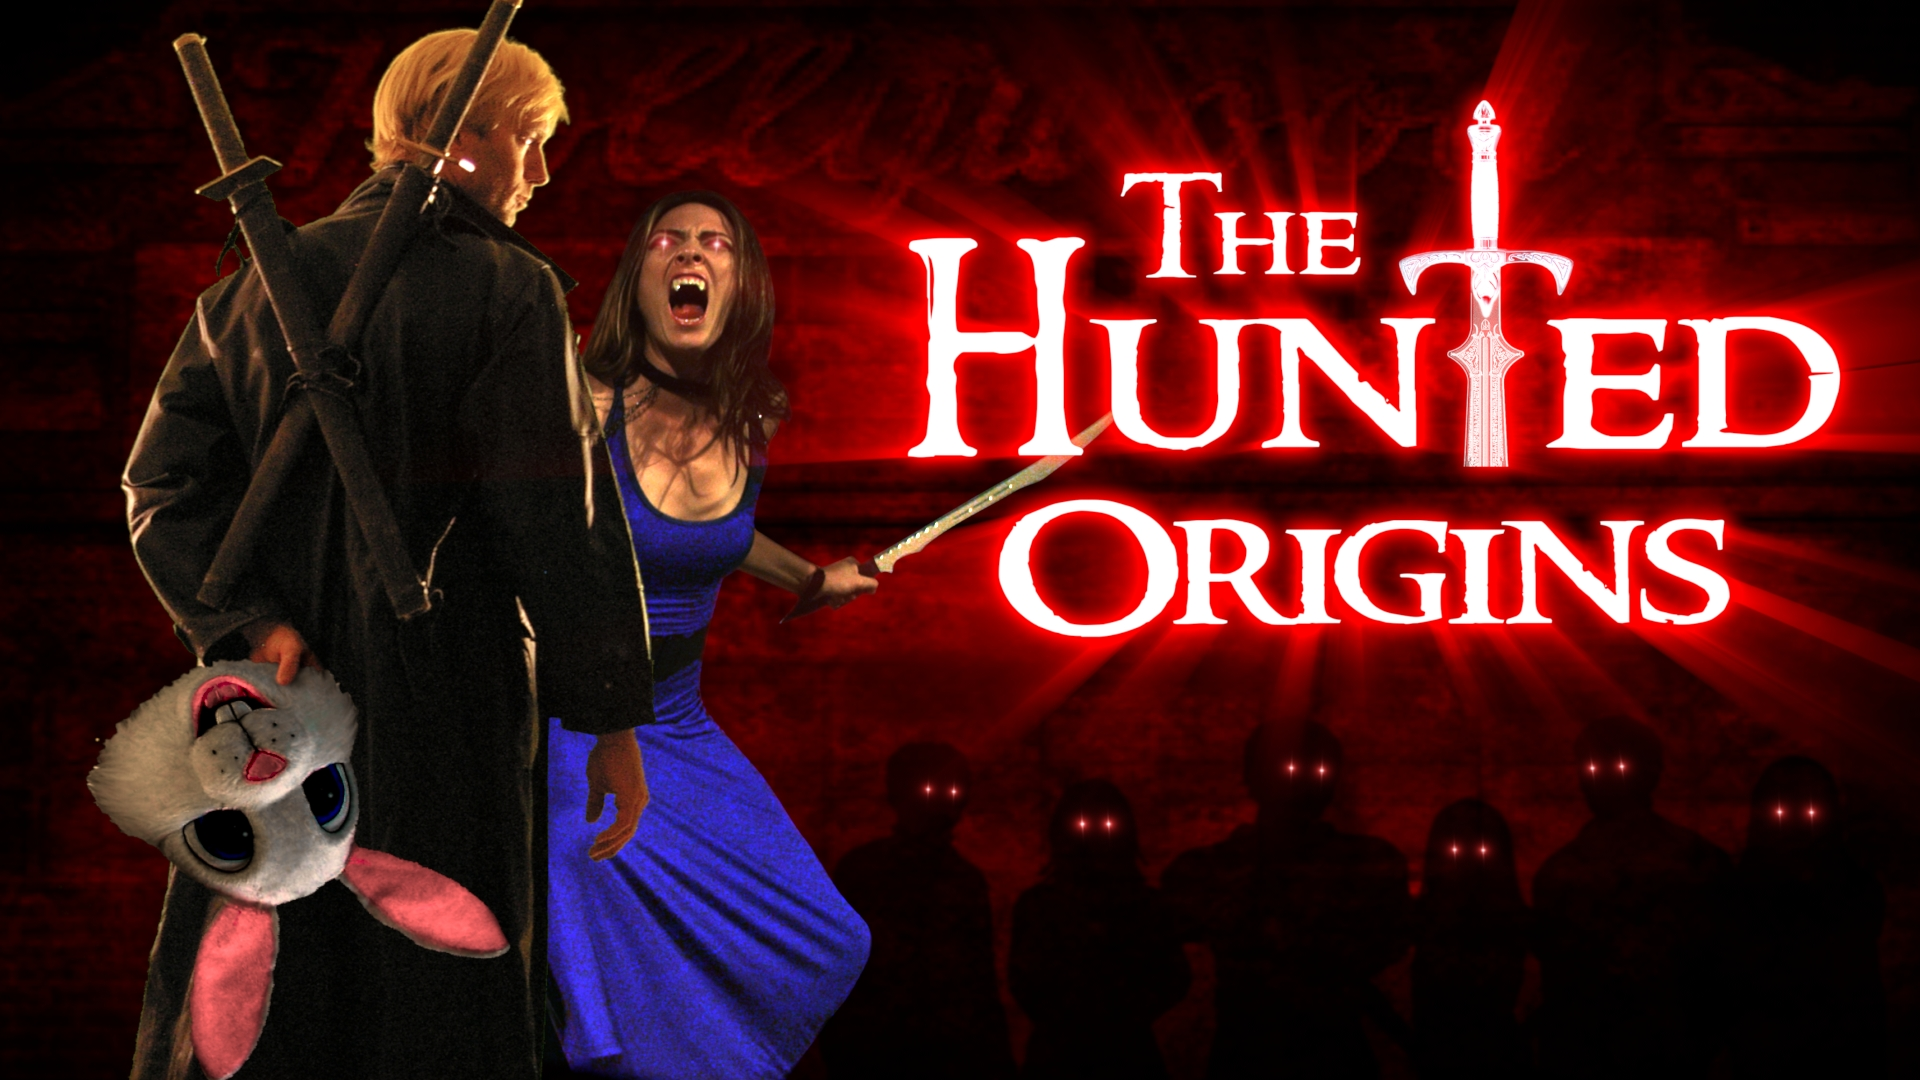 The Hunted Origins